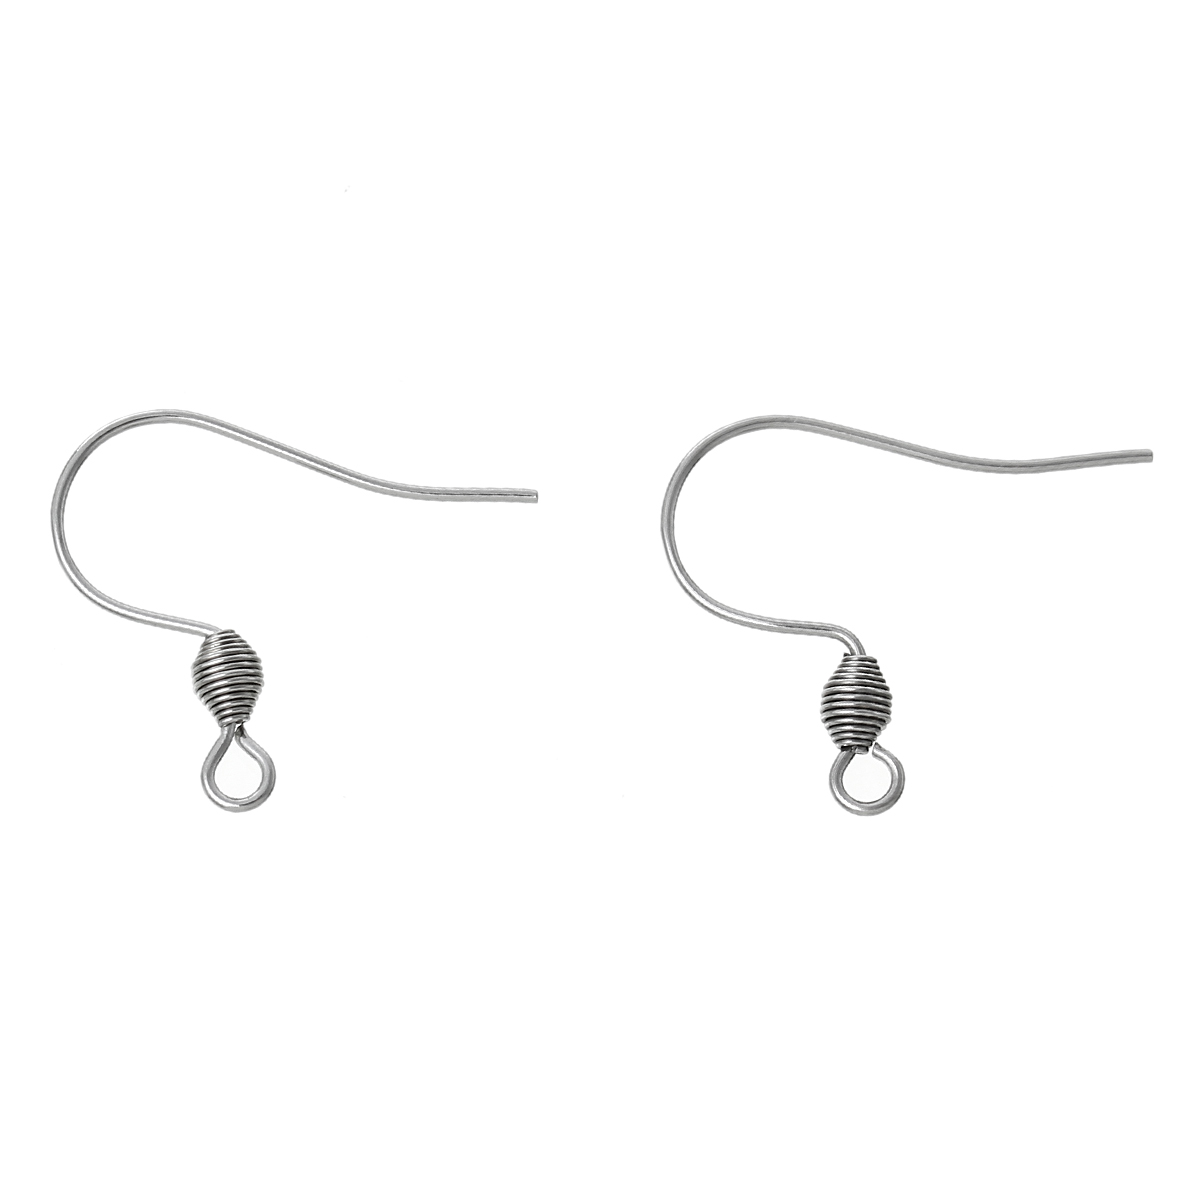 DoreenBeads Stainless Steel Earring Components Hooks U-shaped dull silver color 19mm(6/8)x 17mm(5/8),50 Pairs